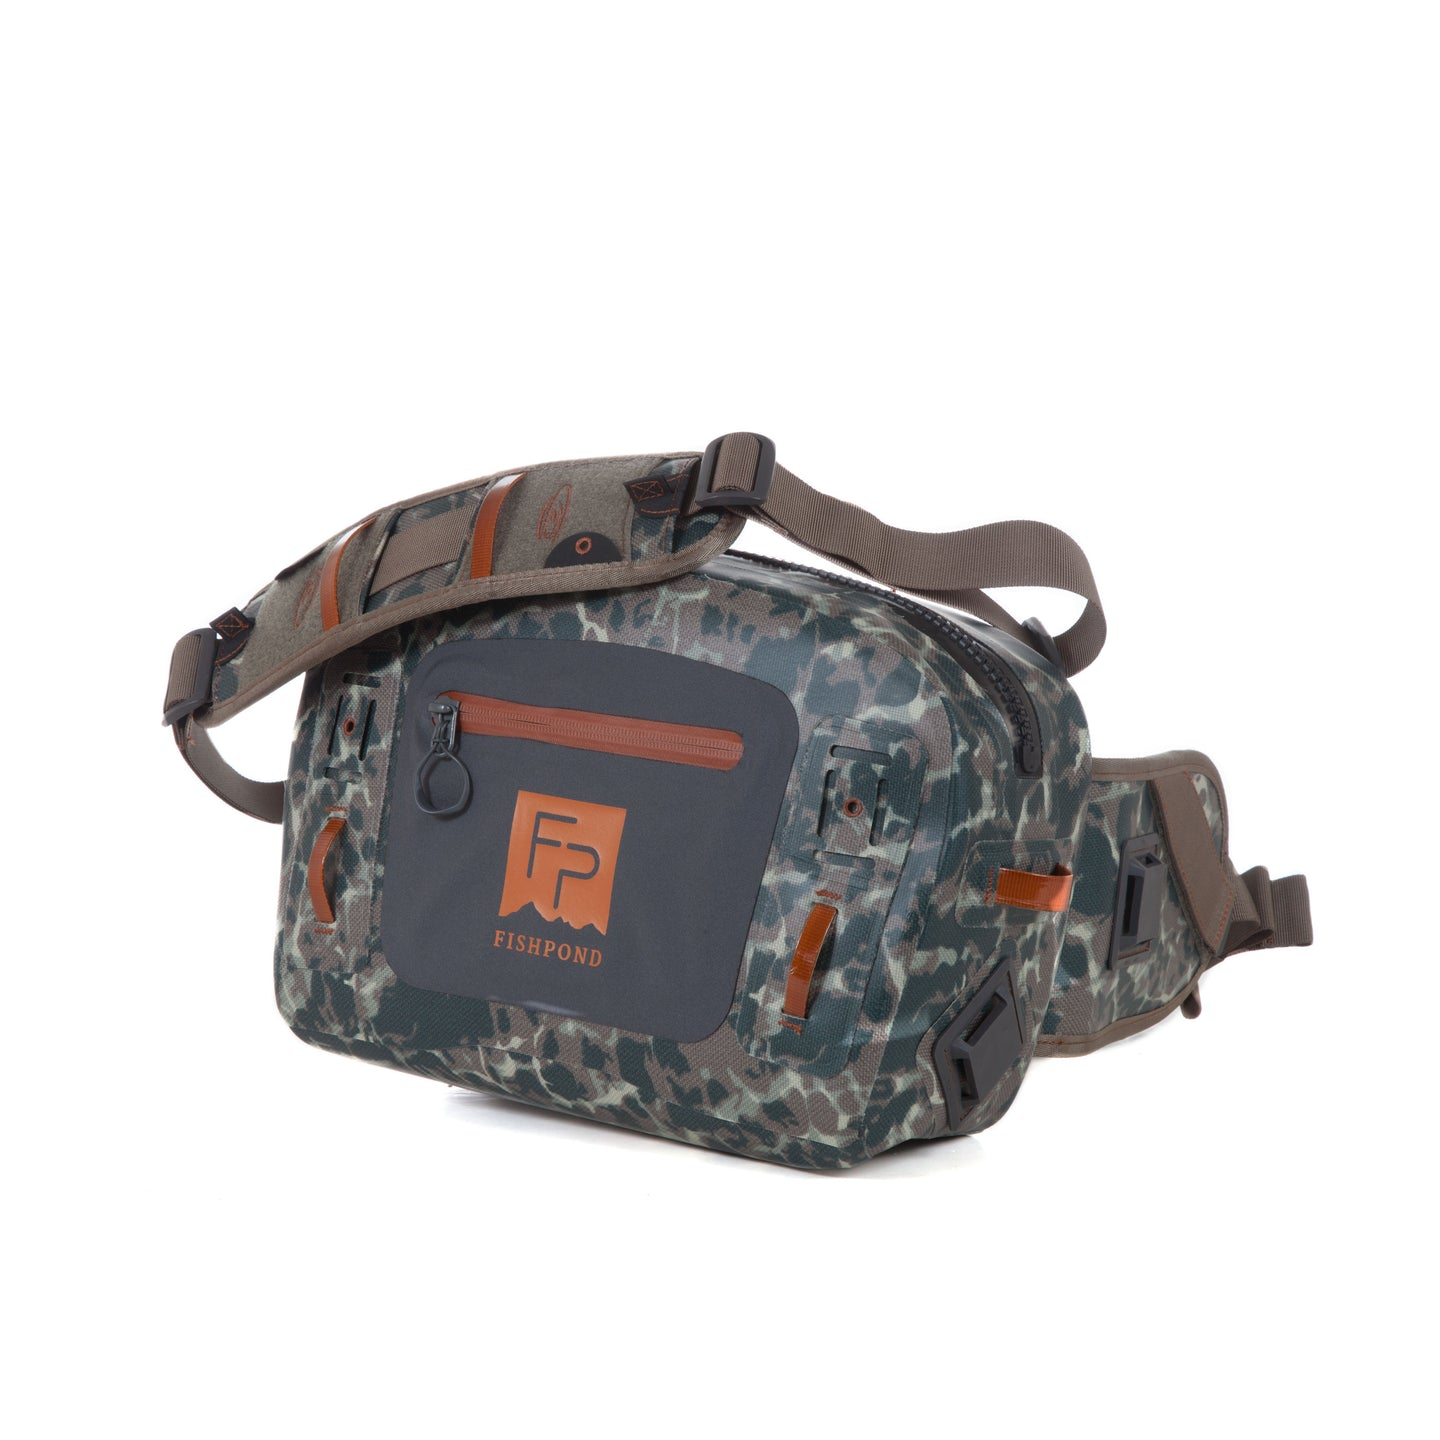 Fishpond Submersible Lumbar Pack